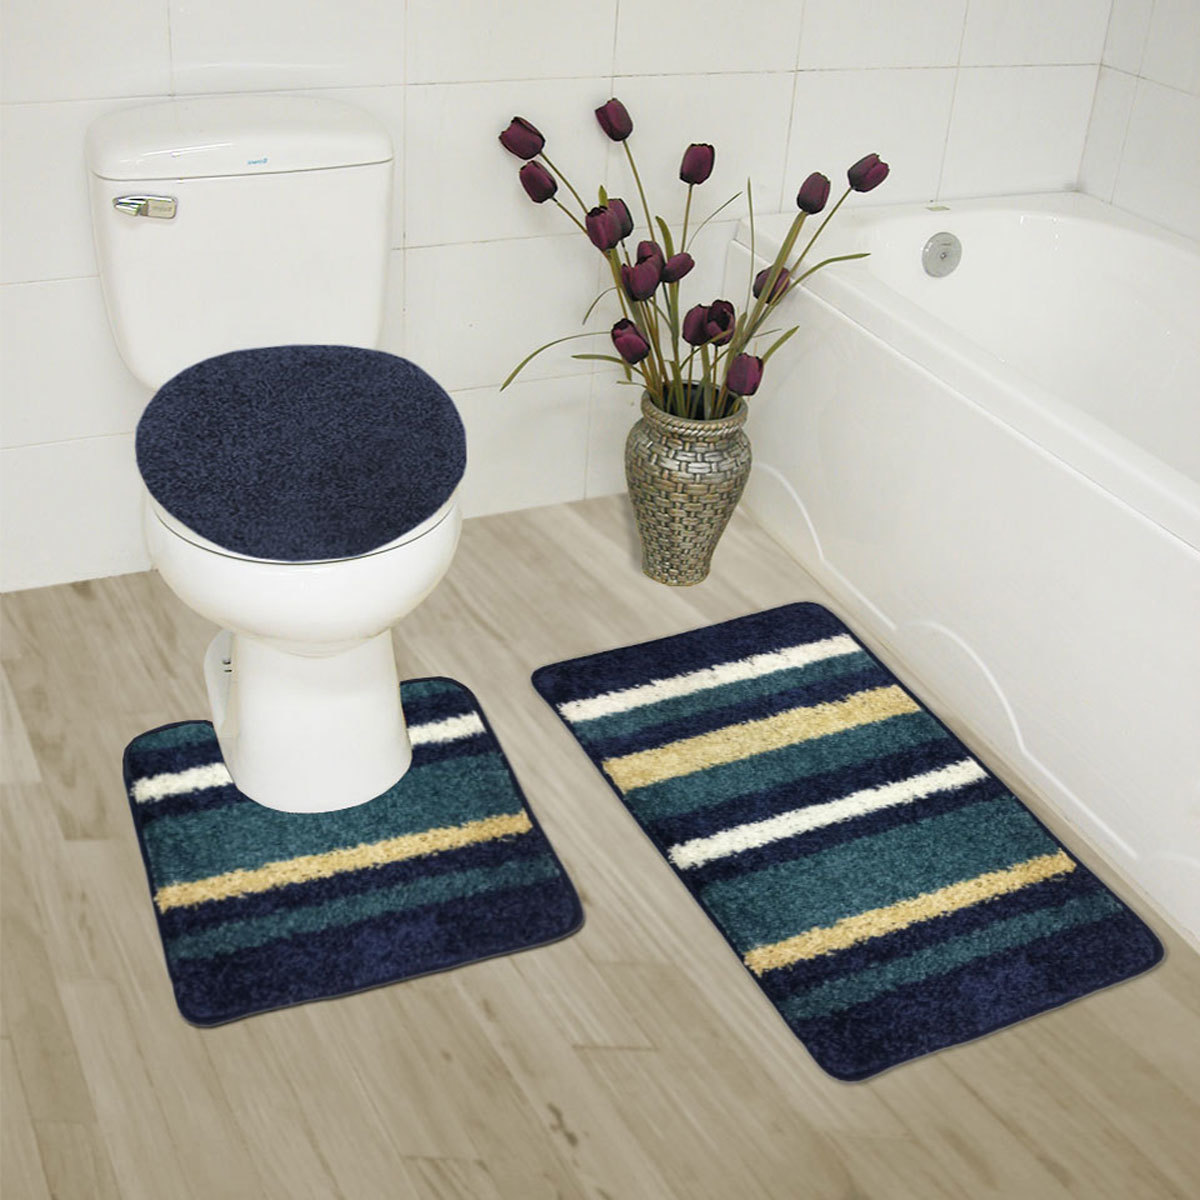 Abby 3 Piece Bathroom Rug Set, Bath Rug, Contour Rug, Lid Cover (Navy)